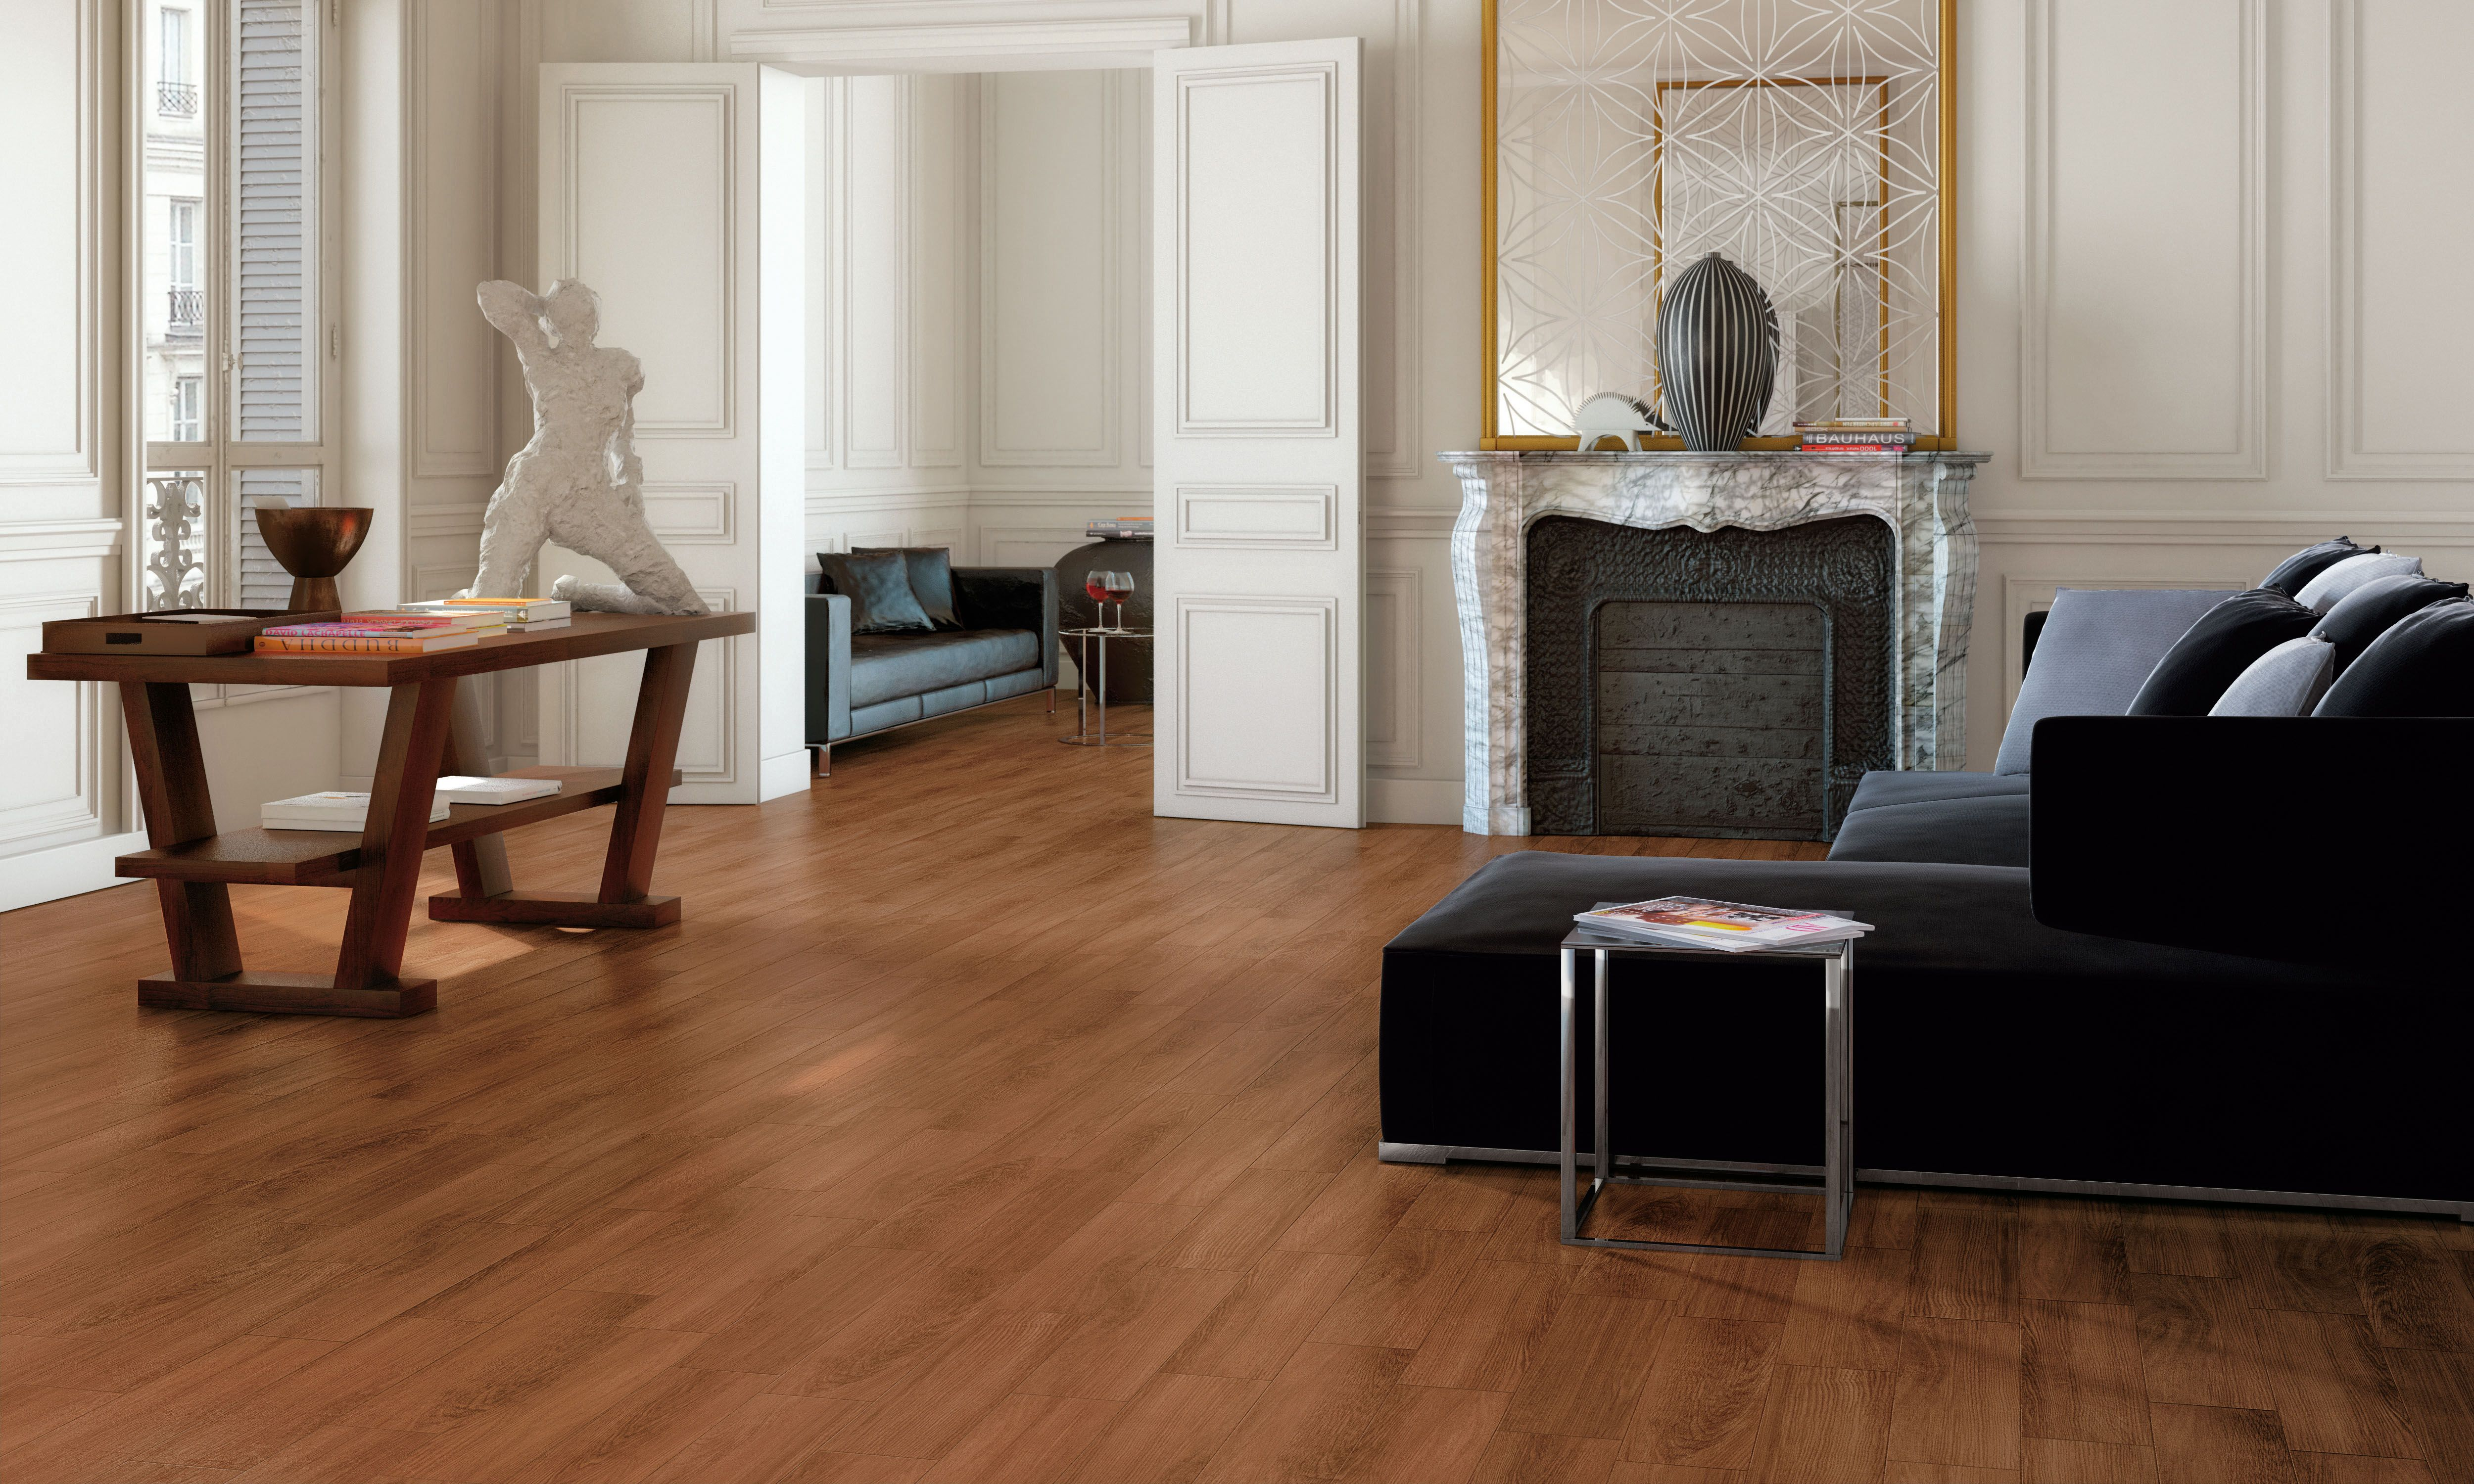 Sassuolo Stone Wood Porcelain Tile in Color Doussie Stocked in our